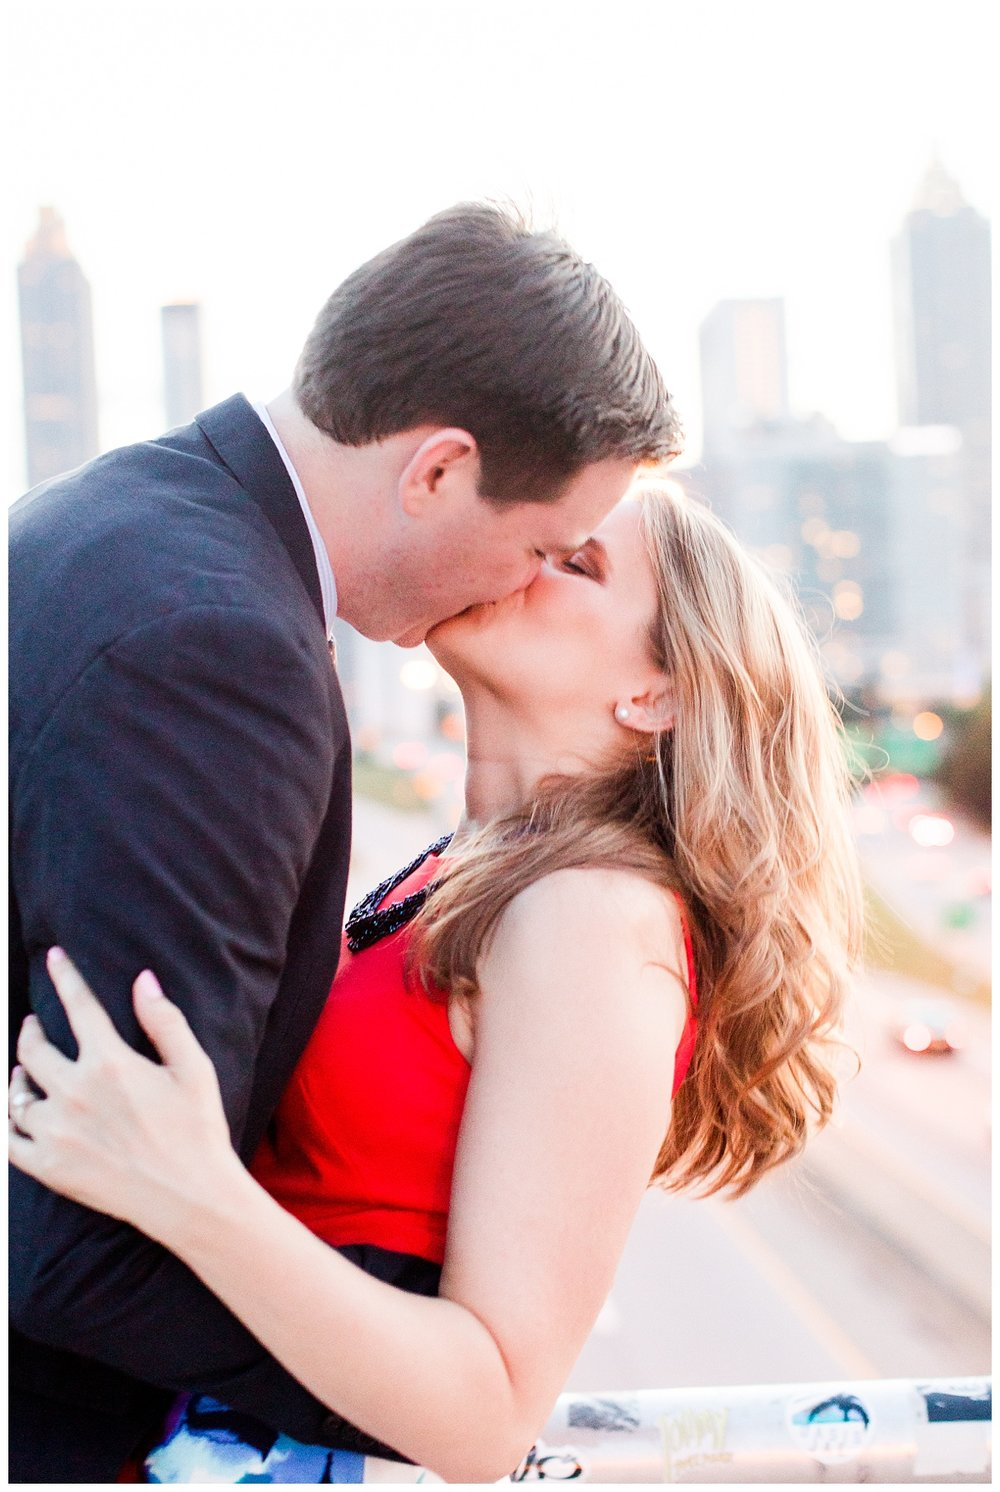 Engagement Pictures_KIm and Hamish_Abby Breaux Photography_Atlanta_Ponce City Market_Jackson Street Bridge_0066.jpg